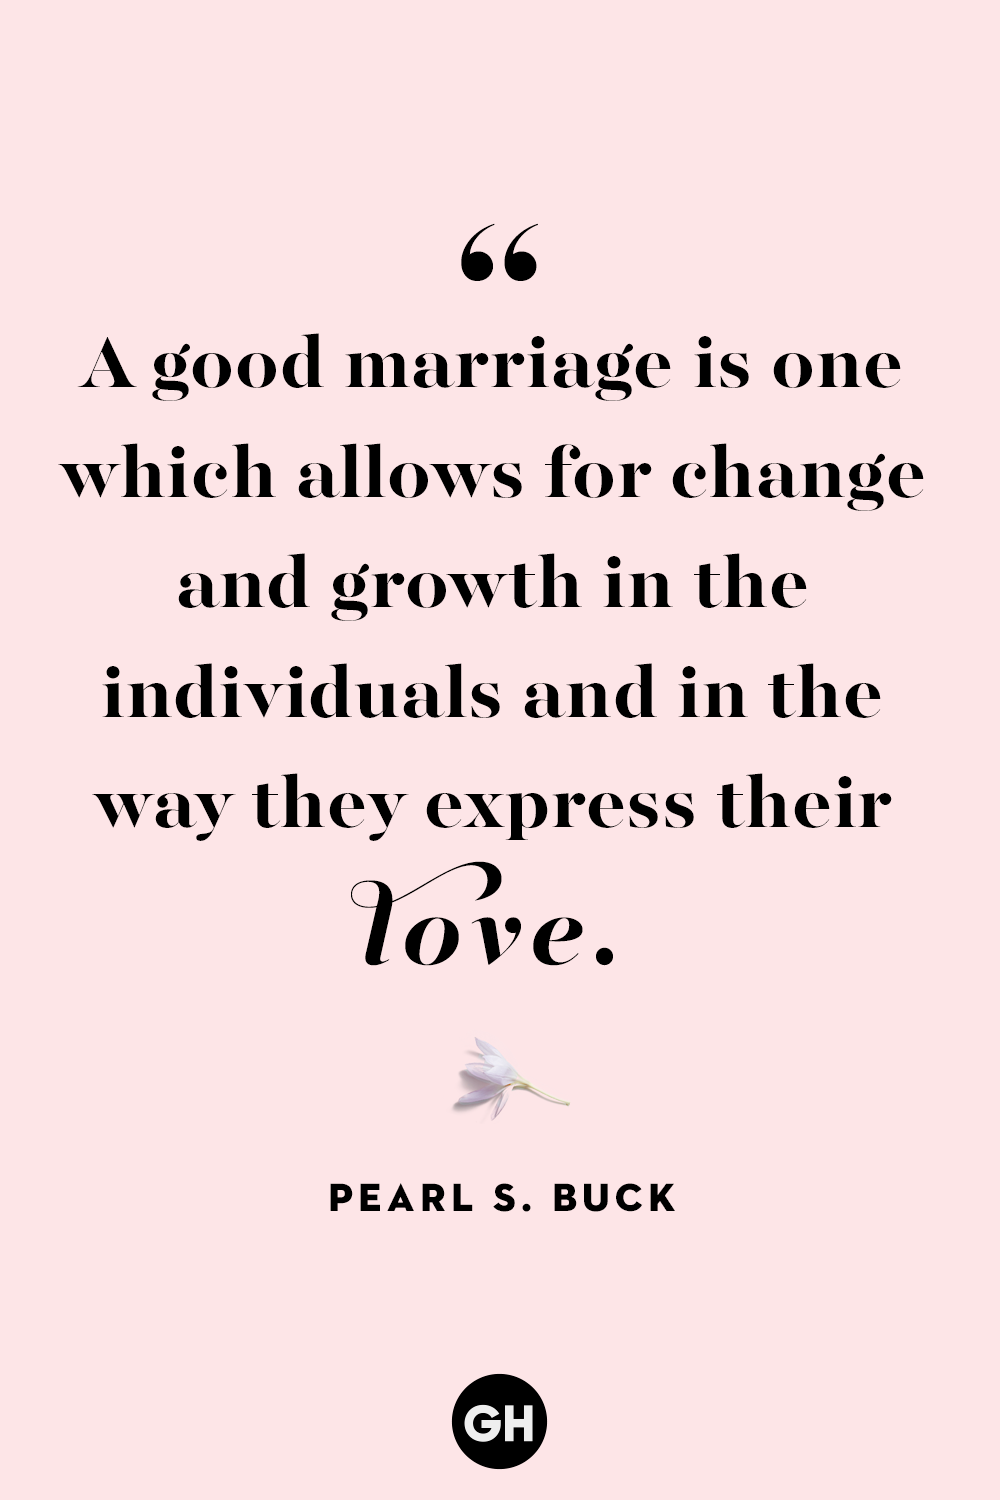 marriage quotes pearl s buck